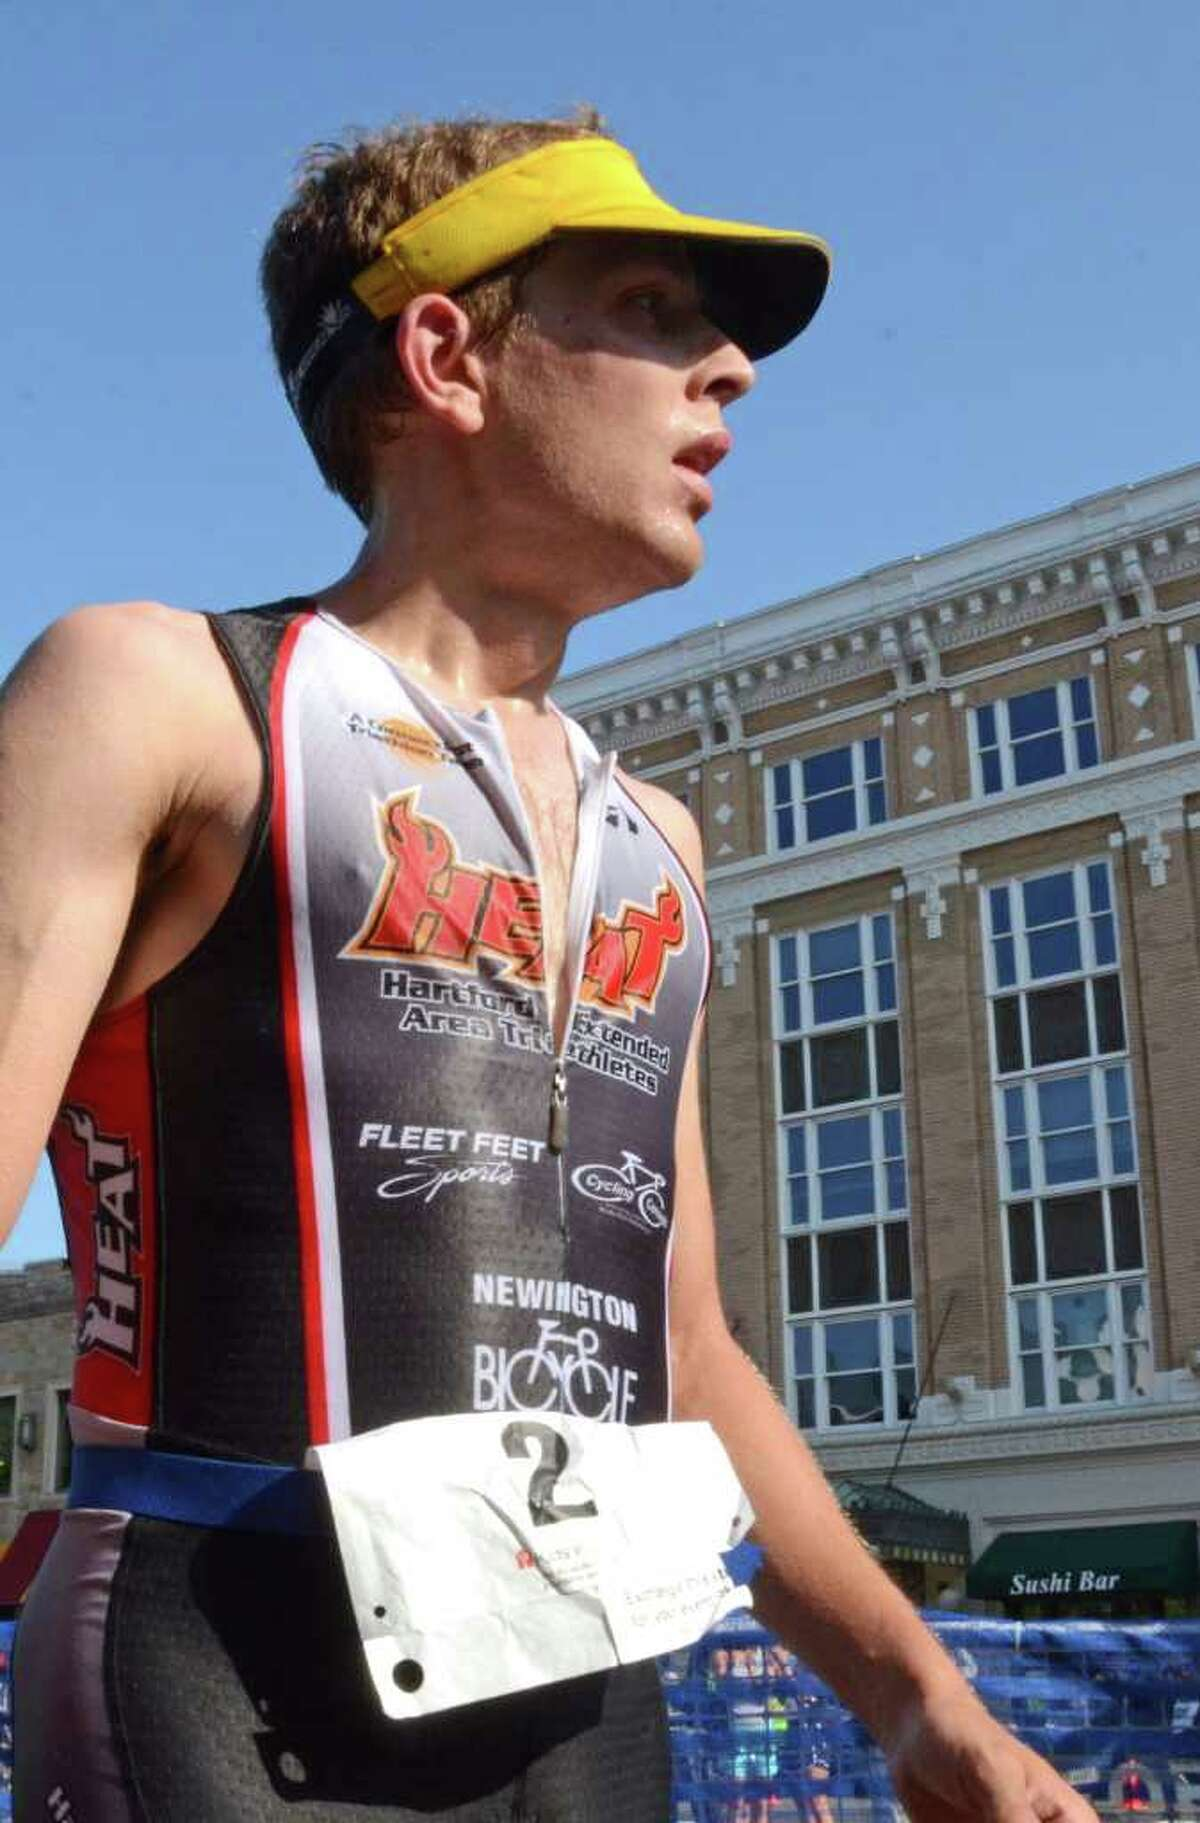 First place finisher Thomas McWalters, of Hartford, during the Stamford KIC IT Triathlon in Columbus Park Sunday June 27, 2010. The race features a mile swim off of Cummings Beach followed by a 24.8 mile bike throughout the city and a 6 mile run finishing at Columbus Park. The event drew more than 500 athletes raising money for Greenwich based Kids in Crisis.